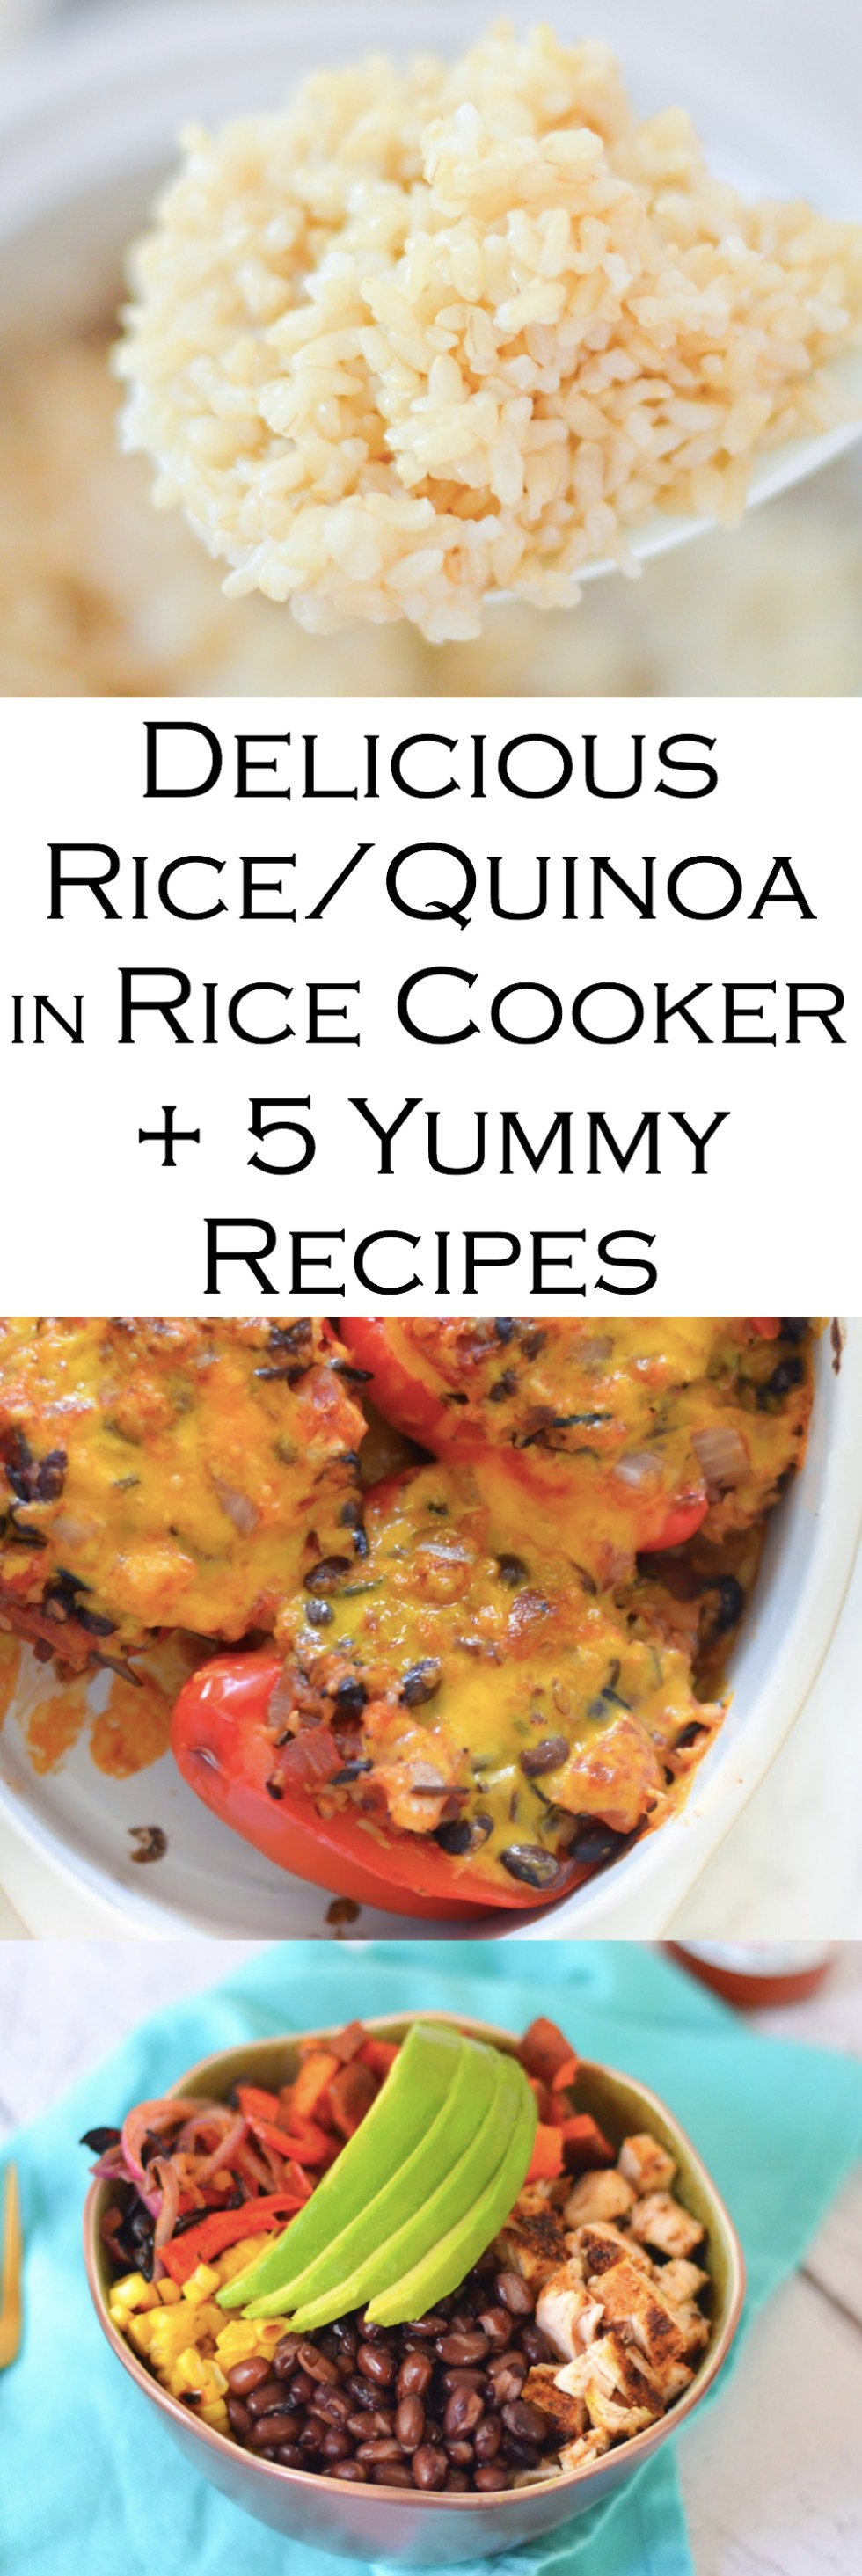 How to Make Rice and Quinoa in your rice cooker and 5 yummy rice and quinoa recipes.